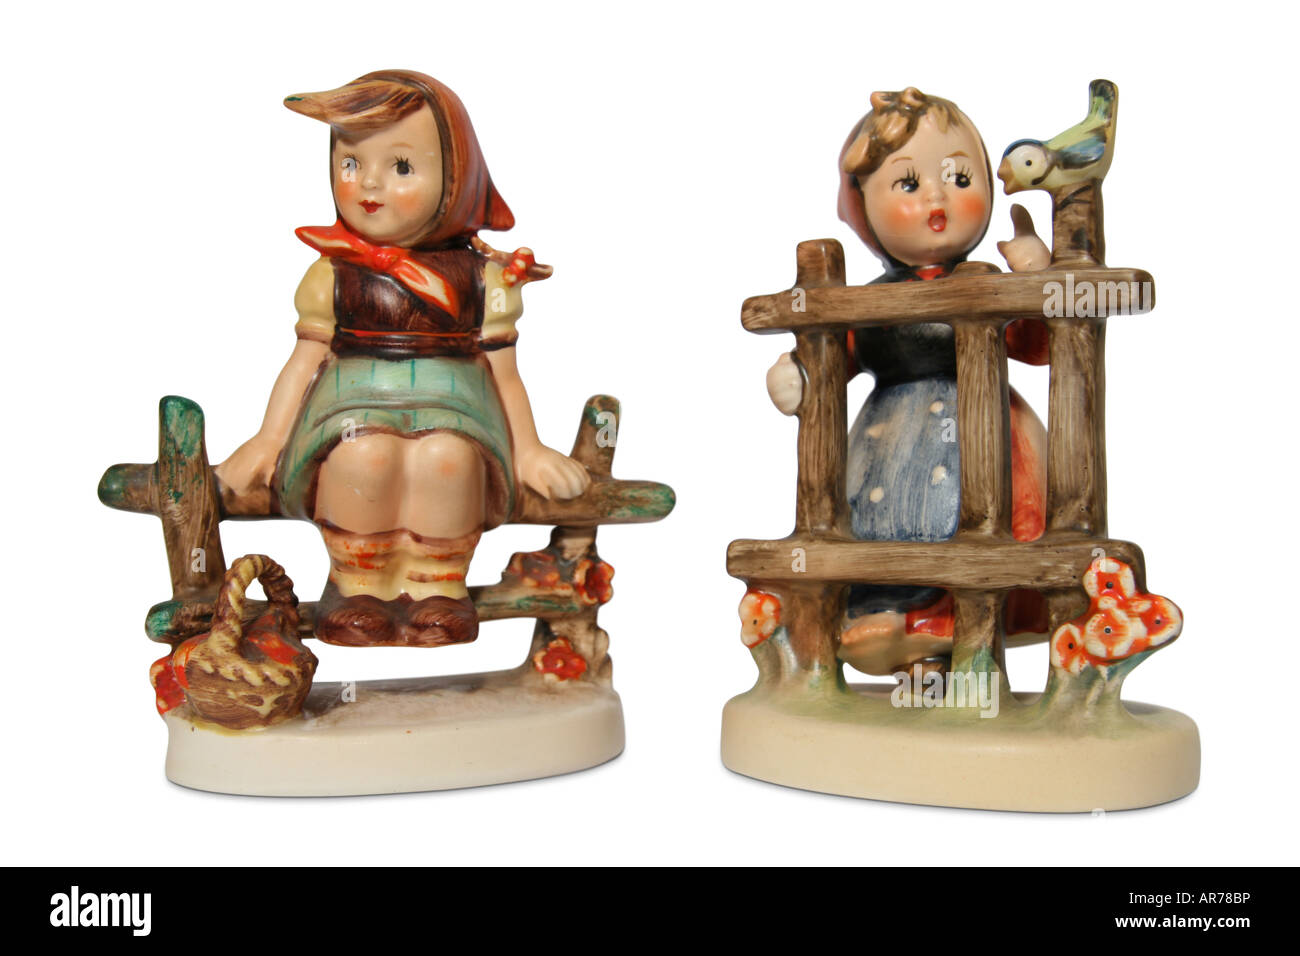 Goebel Hummel figurines: Just Restin' (left) and Signs of Spring. - Stock Image